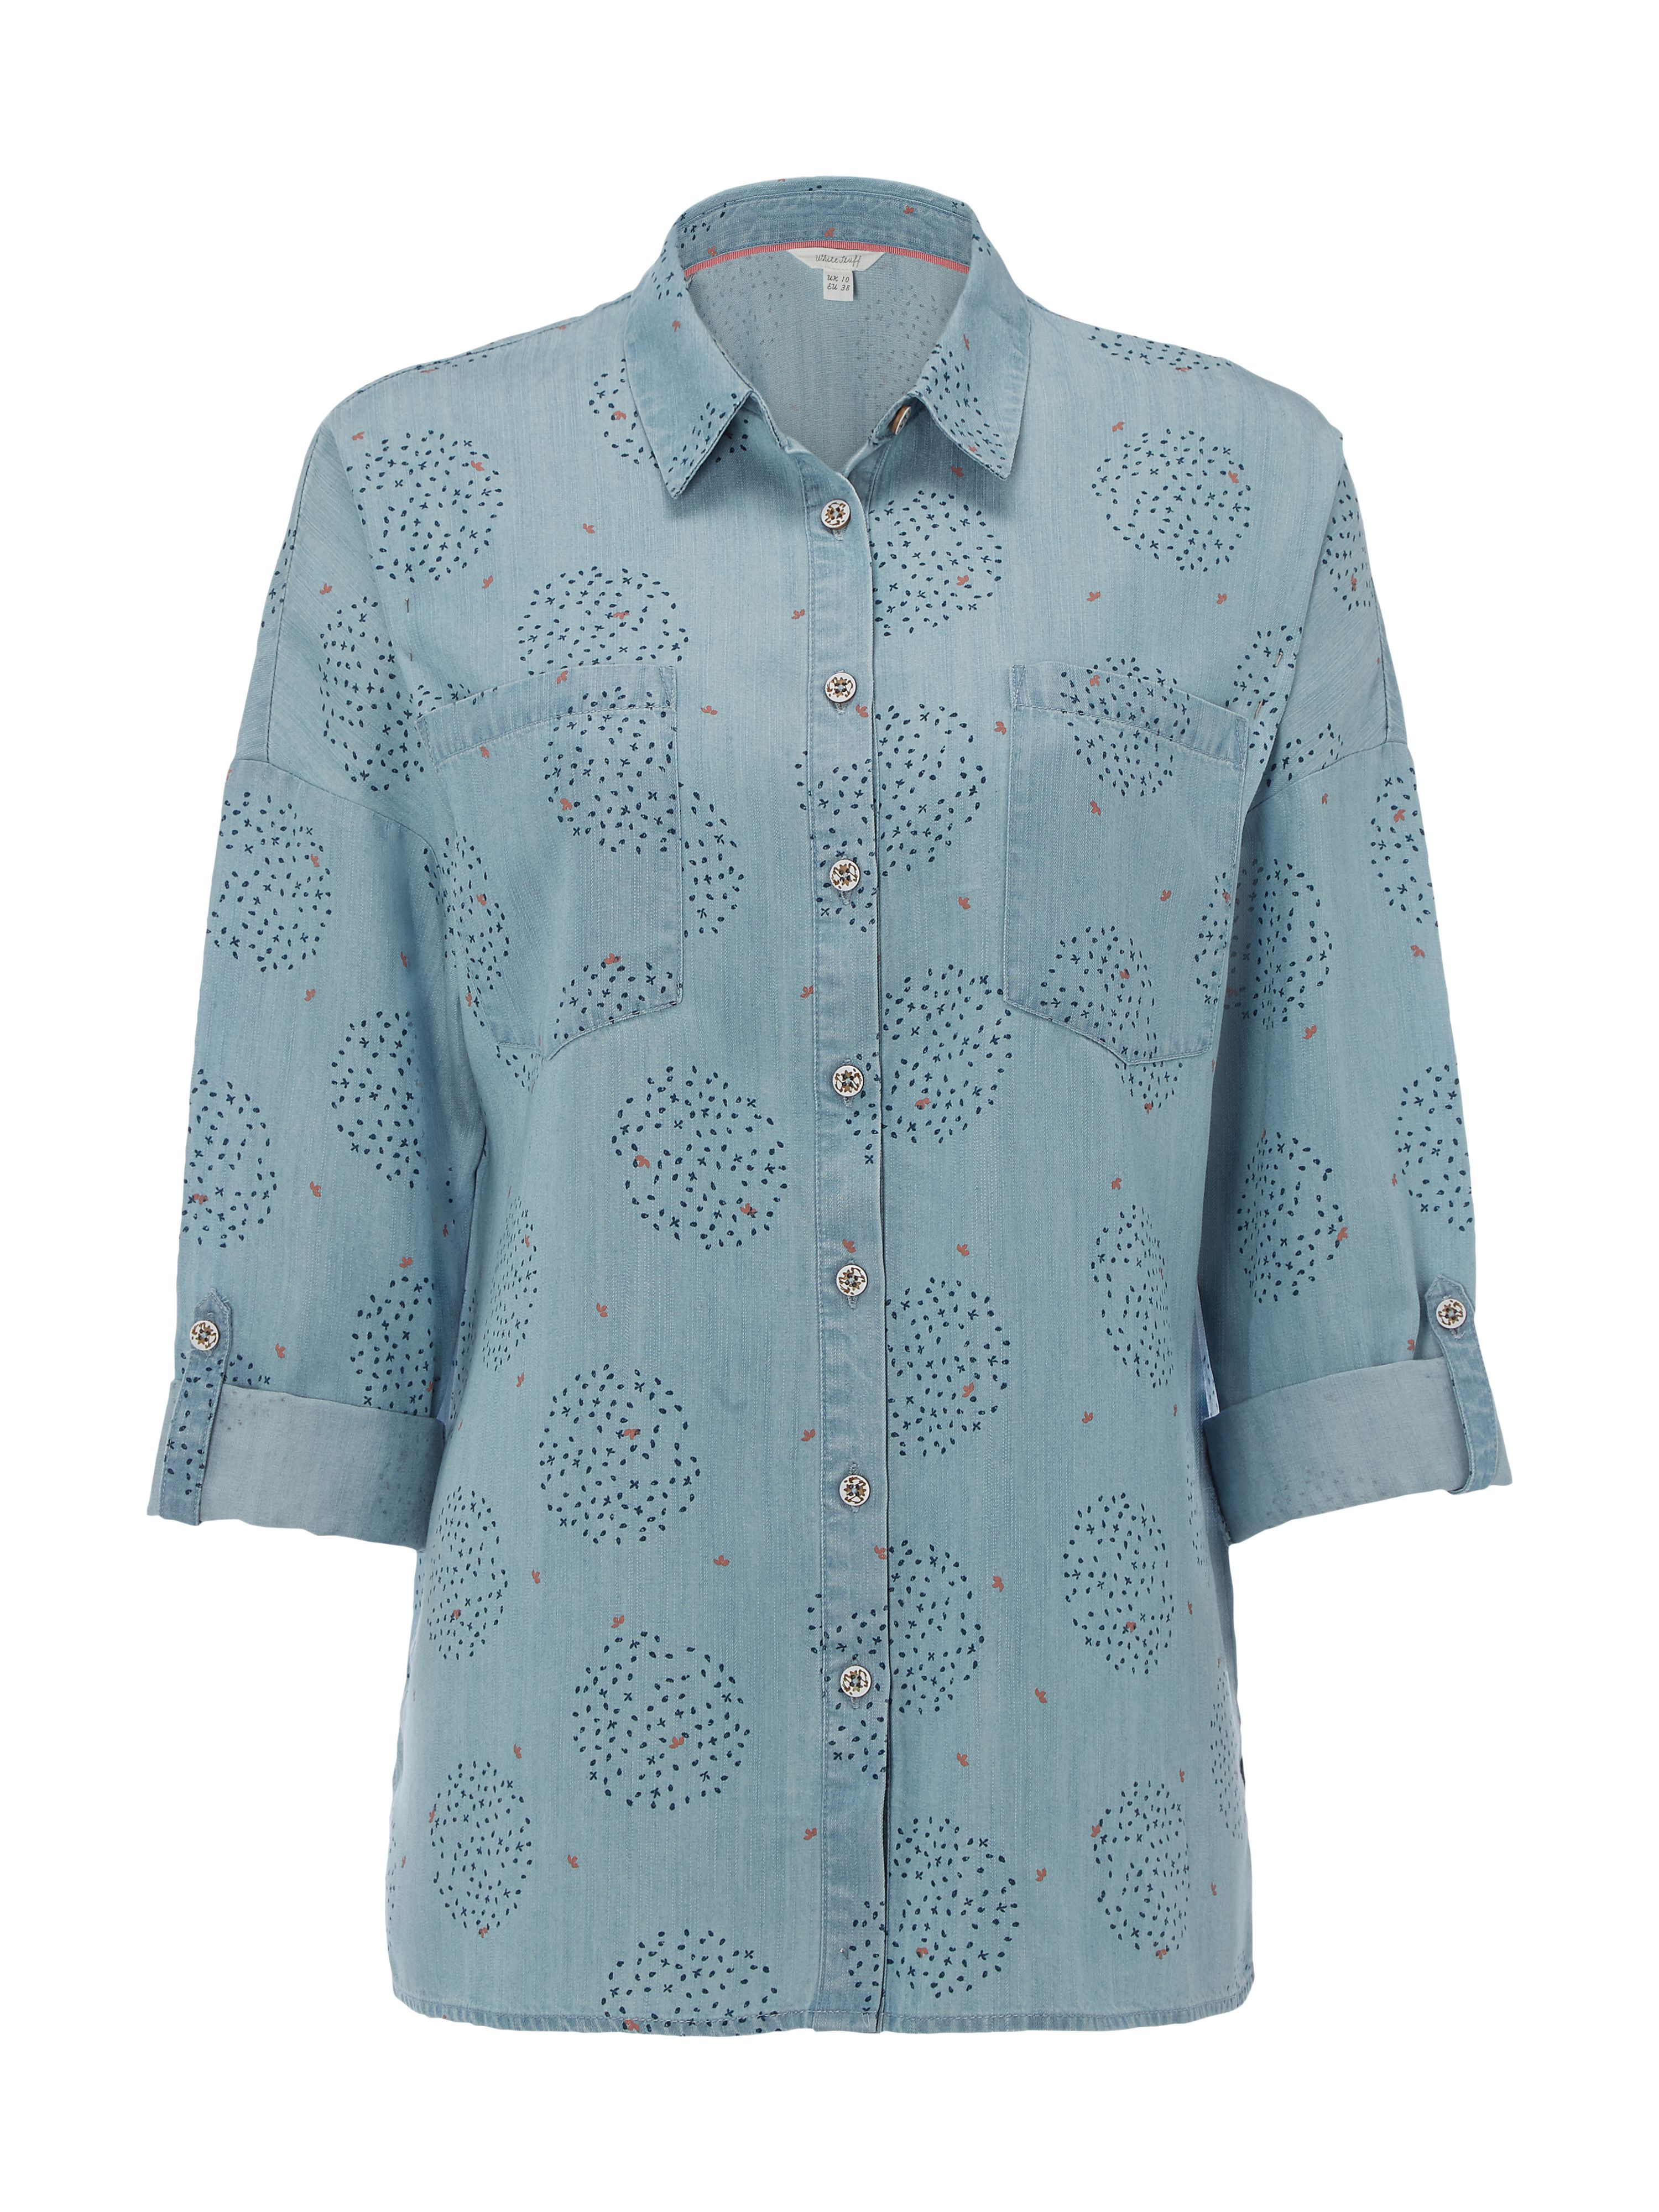 White Stuff Rupee Shirt, Denim